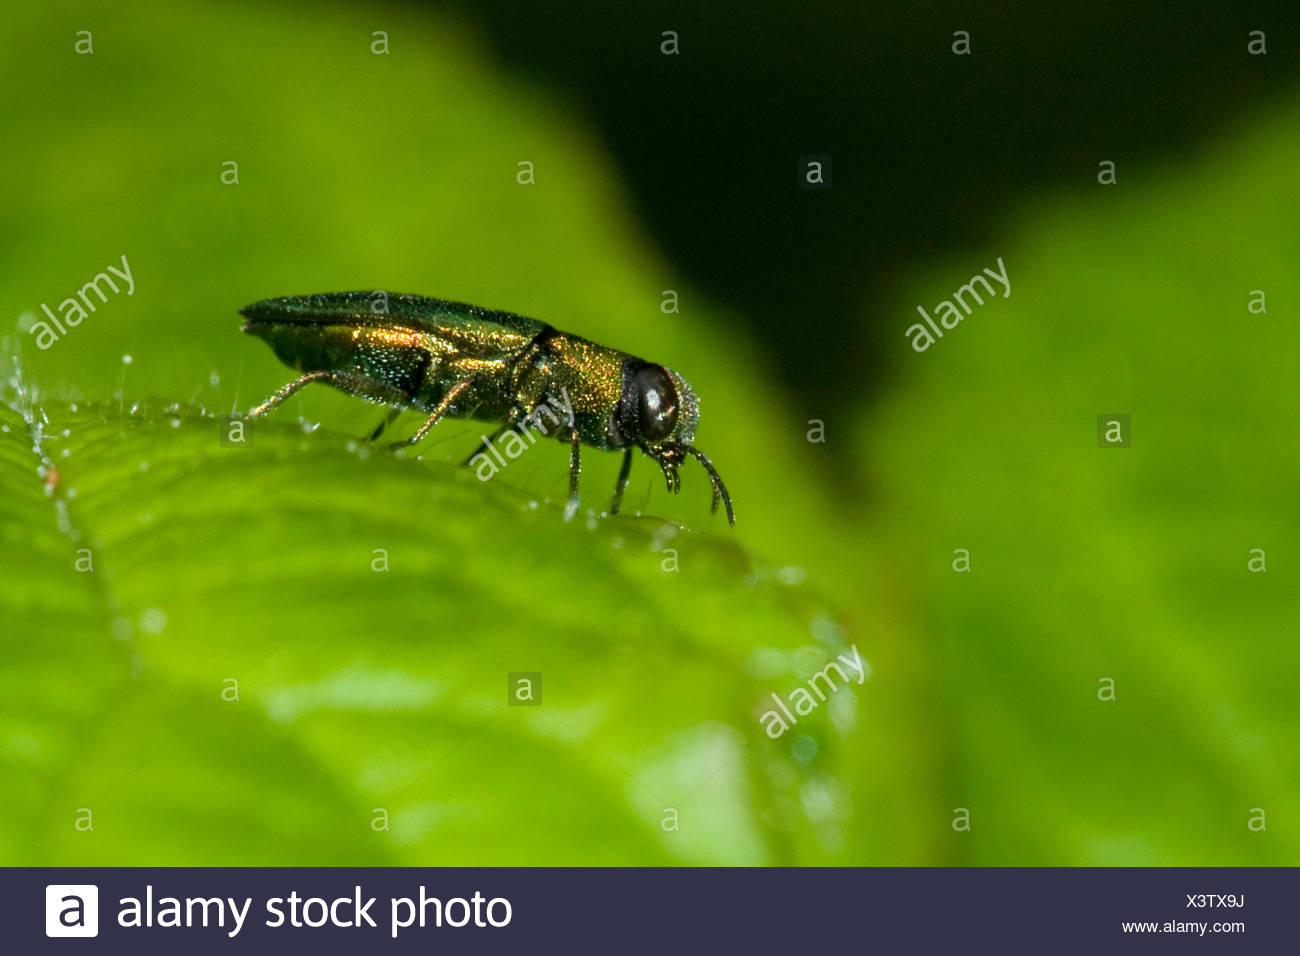 Jewel beetle, Metallic wood-boring beetle (Anthaxia nitidula), male, Germany - Stock Image